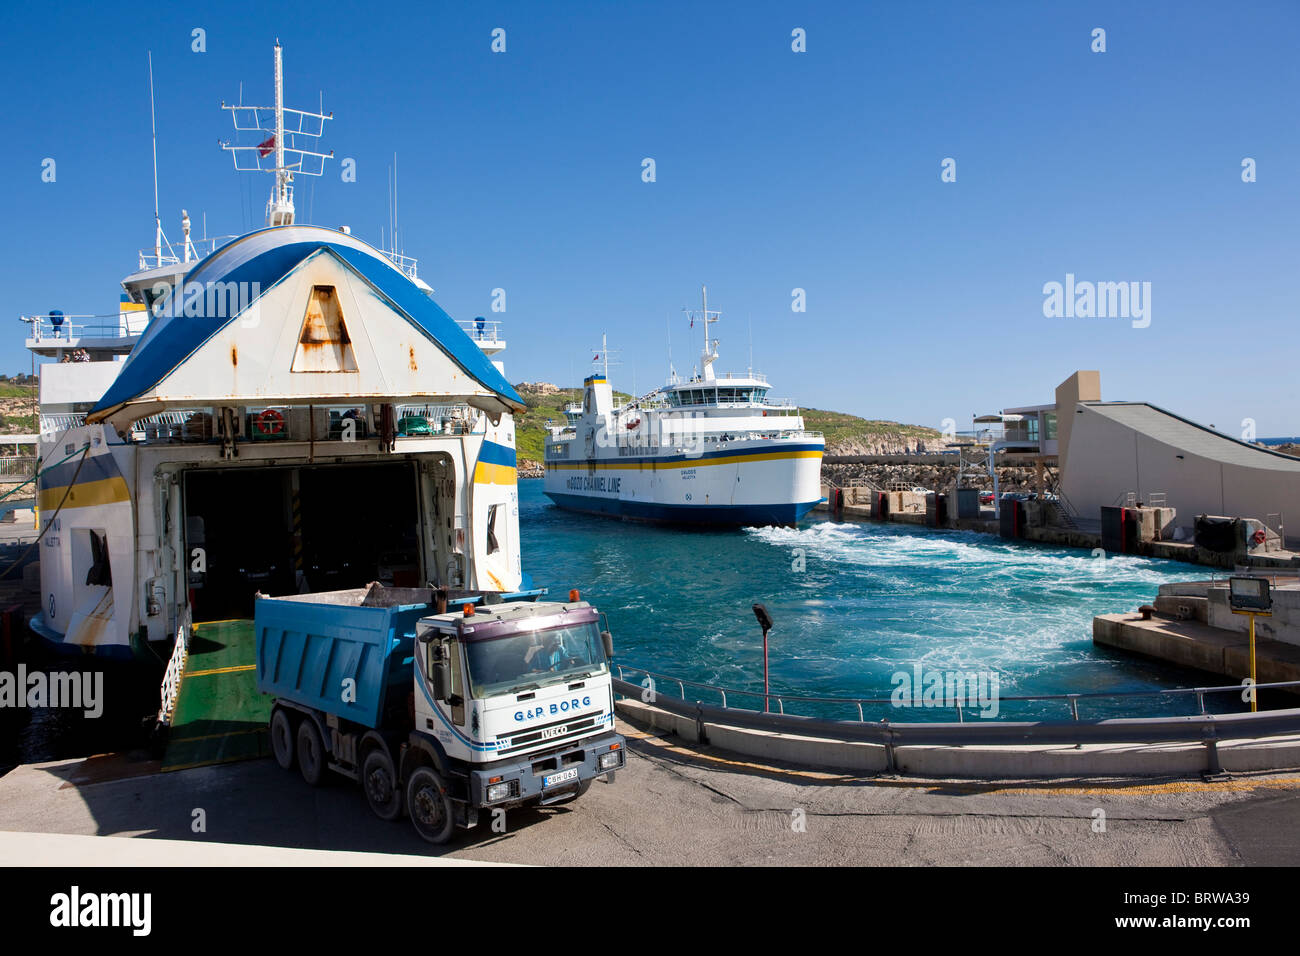 Ferry from Malta docking in the Mgarr port of Gozo and unloading a truck, Mgarr, Gozo, Malta, Europe - Stock Image